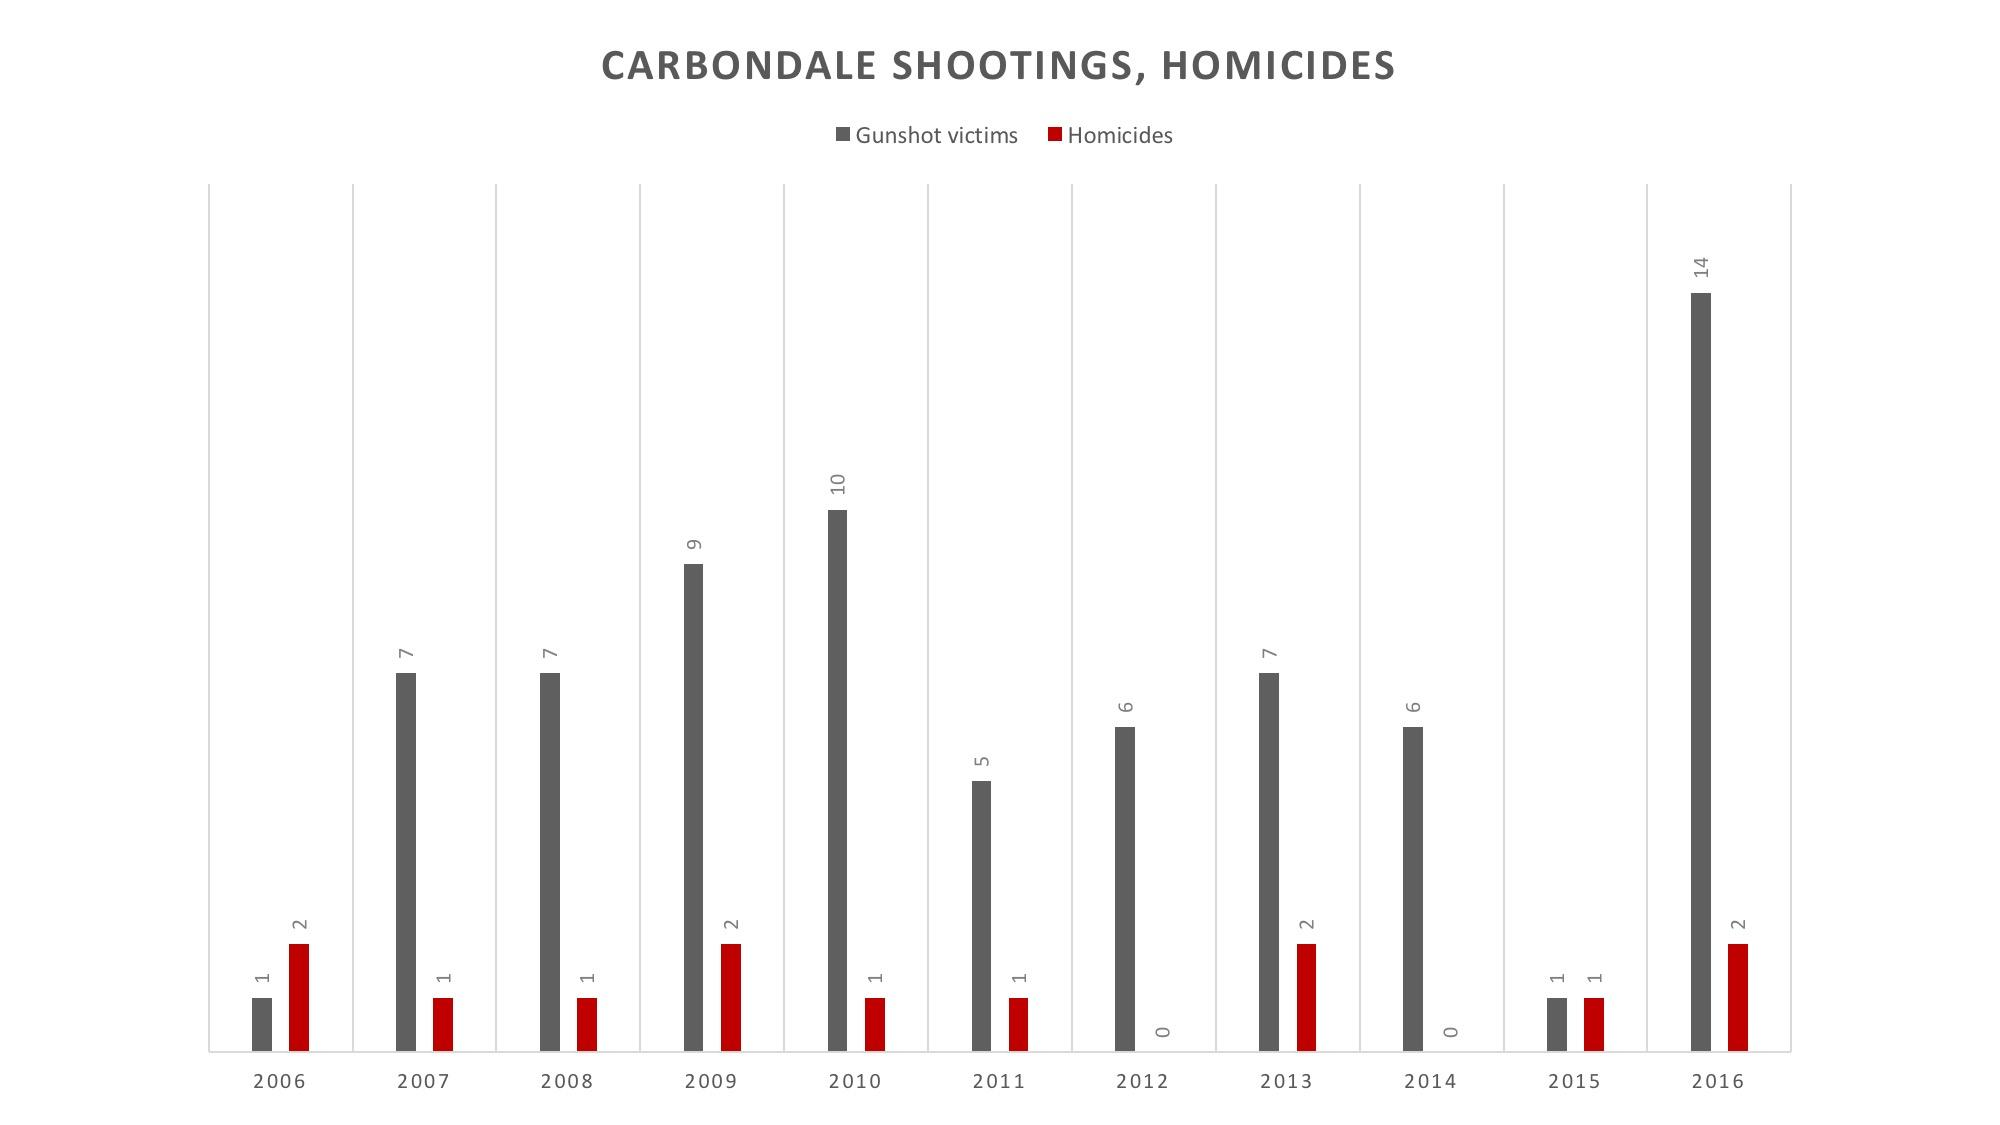 Carbondale shootings, homicides